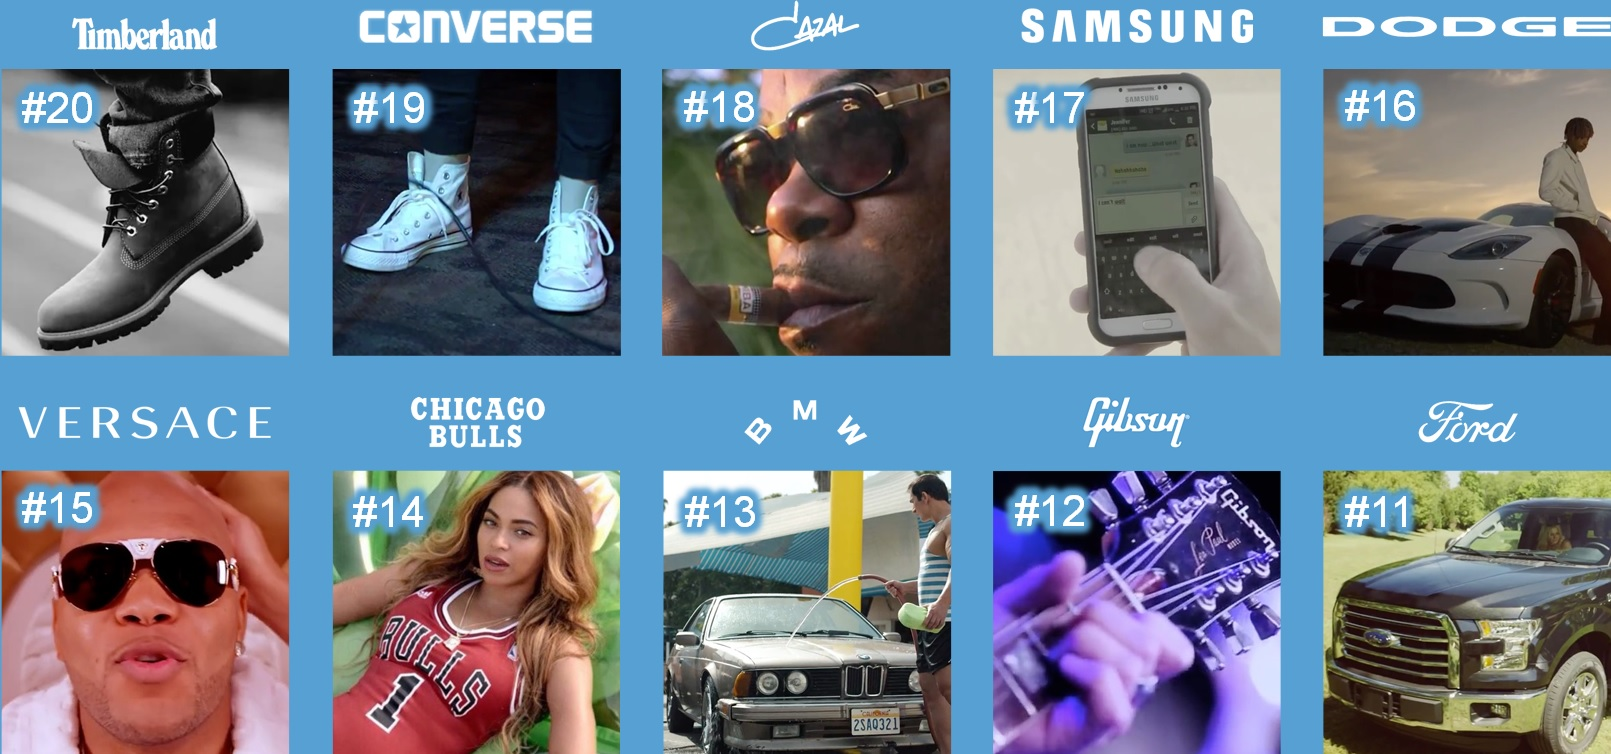 top 20 most visible Brands in music 2015